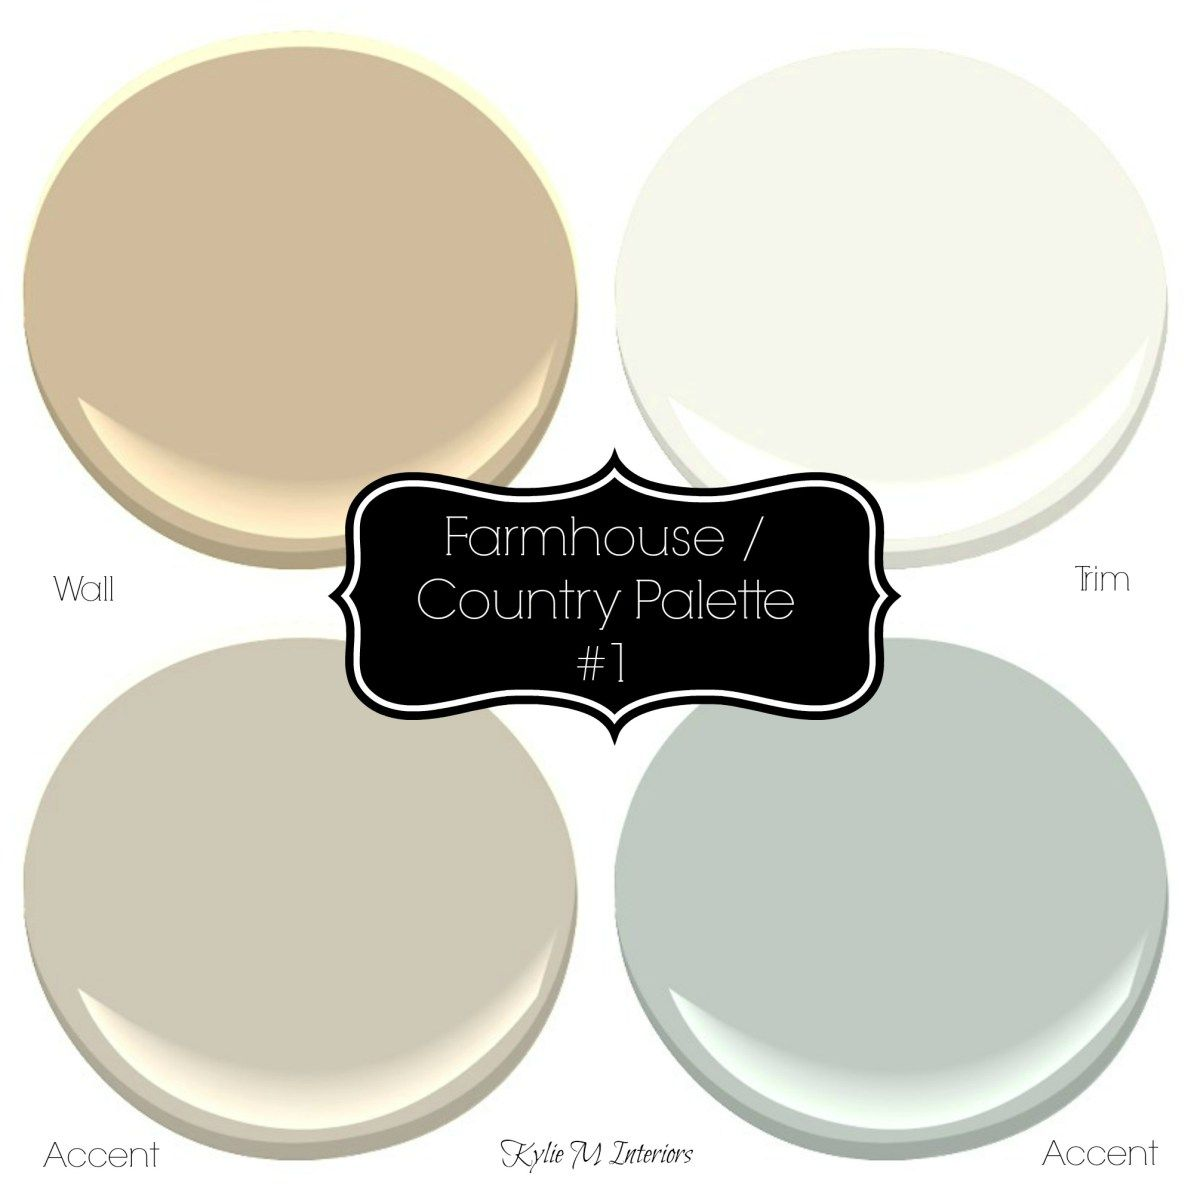 Sherwin Williams 3 Neutral Farmhouse Country Paint Palettes is part of Country paint colors, Rustic paint colors, Farmhouse paint colors, Paint color palettes, Farmhouse paint, House painting - Neutral Farmhouse Paint Colour Palettes Partner Blog Post to The Best Farmhouse Rustic Paint Colours  Benjamin Moore Whether you call it rustic, country or farmhouse, there is no doubt that today